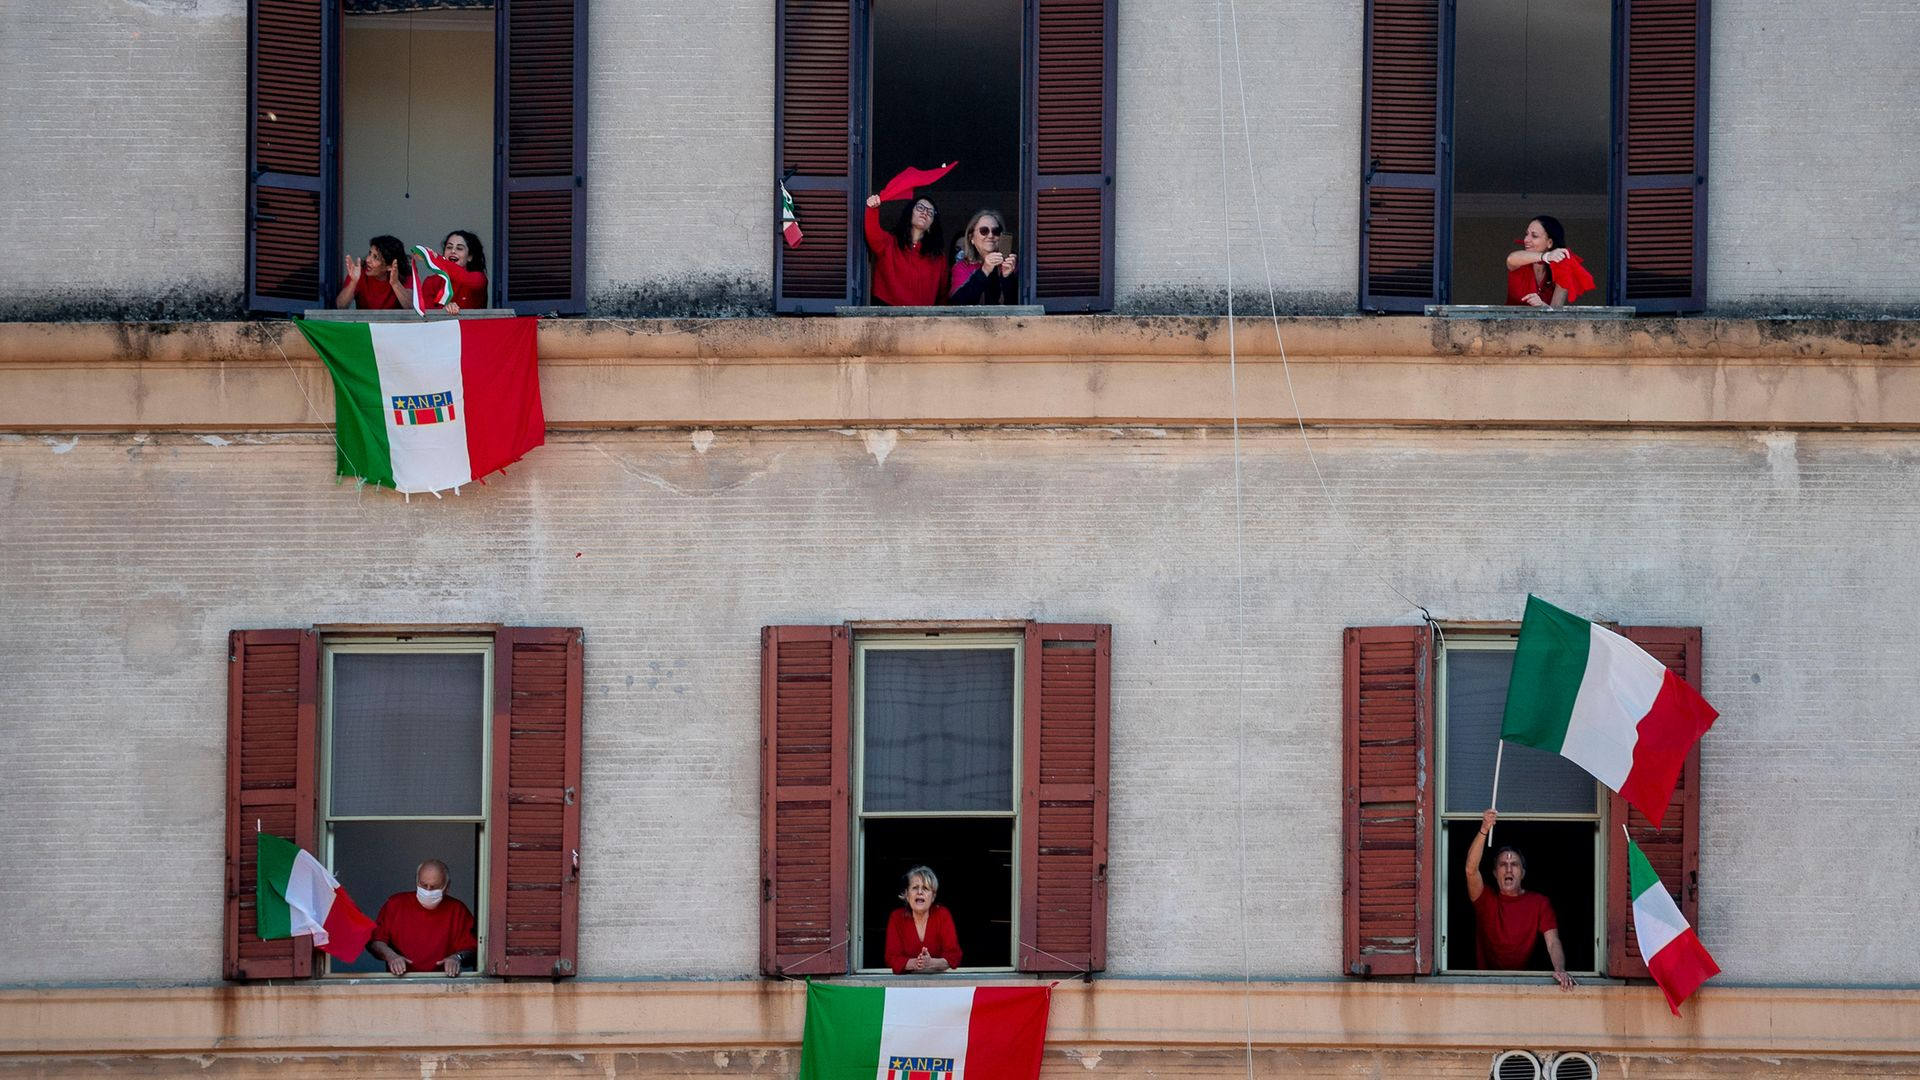 Residents in Rome take part in a communal singing event, during Italy's first lockdown, in April 2020 - Credit: Getty Images